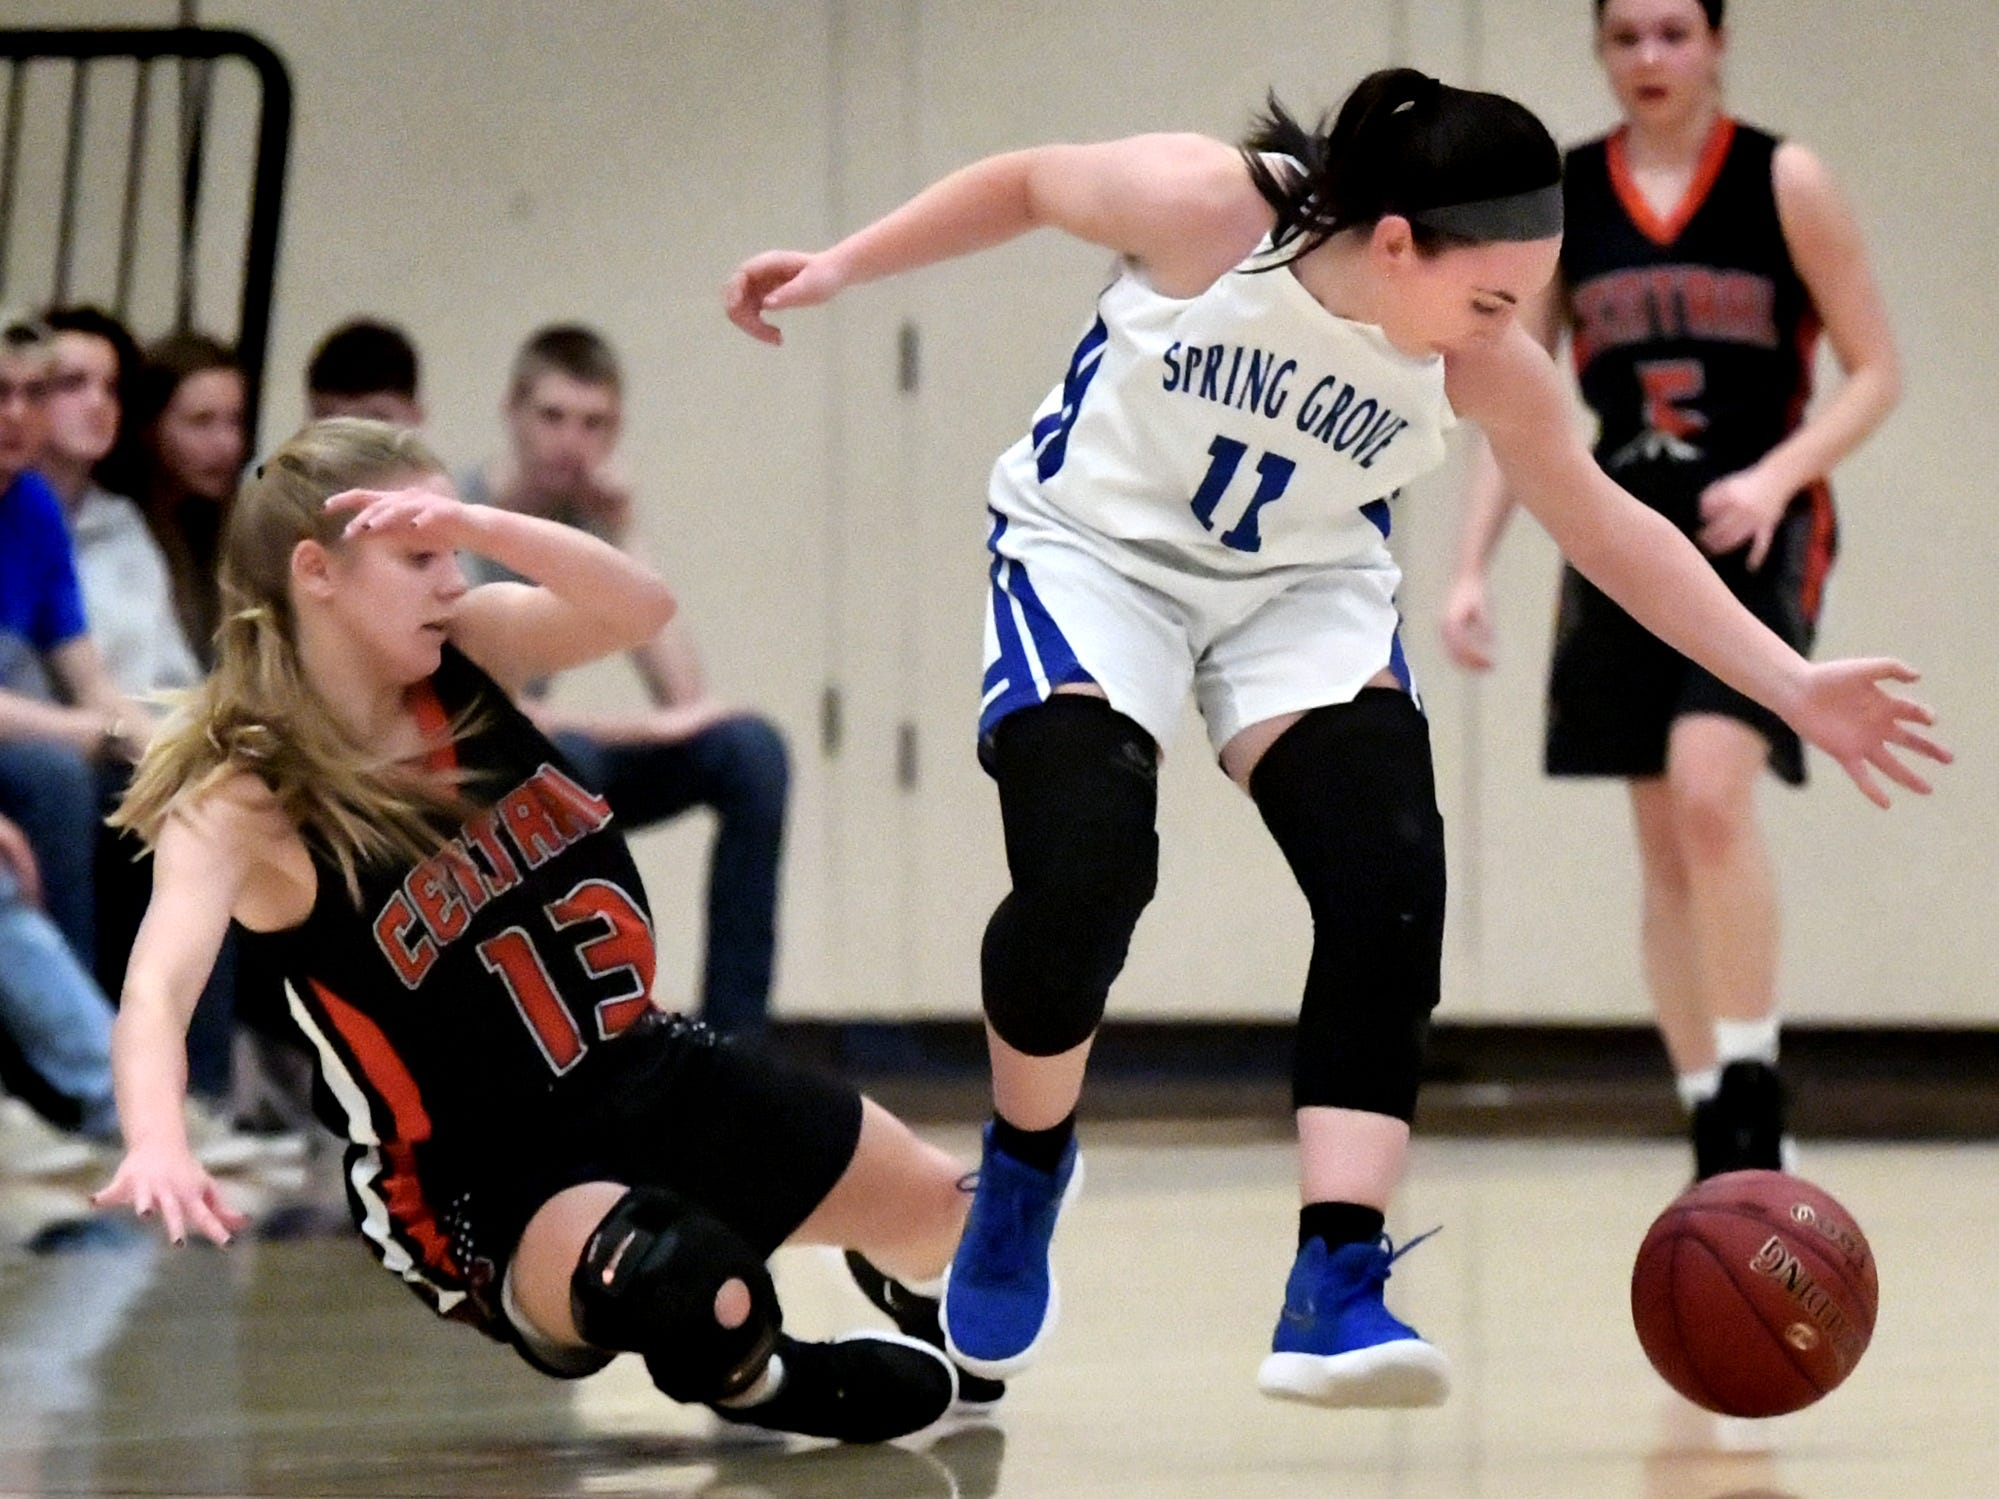 Spring Grove's Haley Wagman and Central York's Grayce Rothrock collide while chasing a loose ball during basketball action at Spring Grove Tuesday, Jan. 8, 2019. Bill Kalina photo